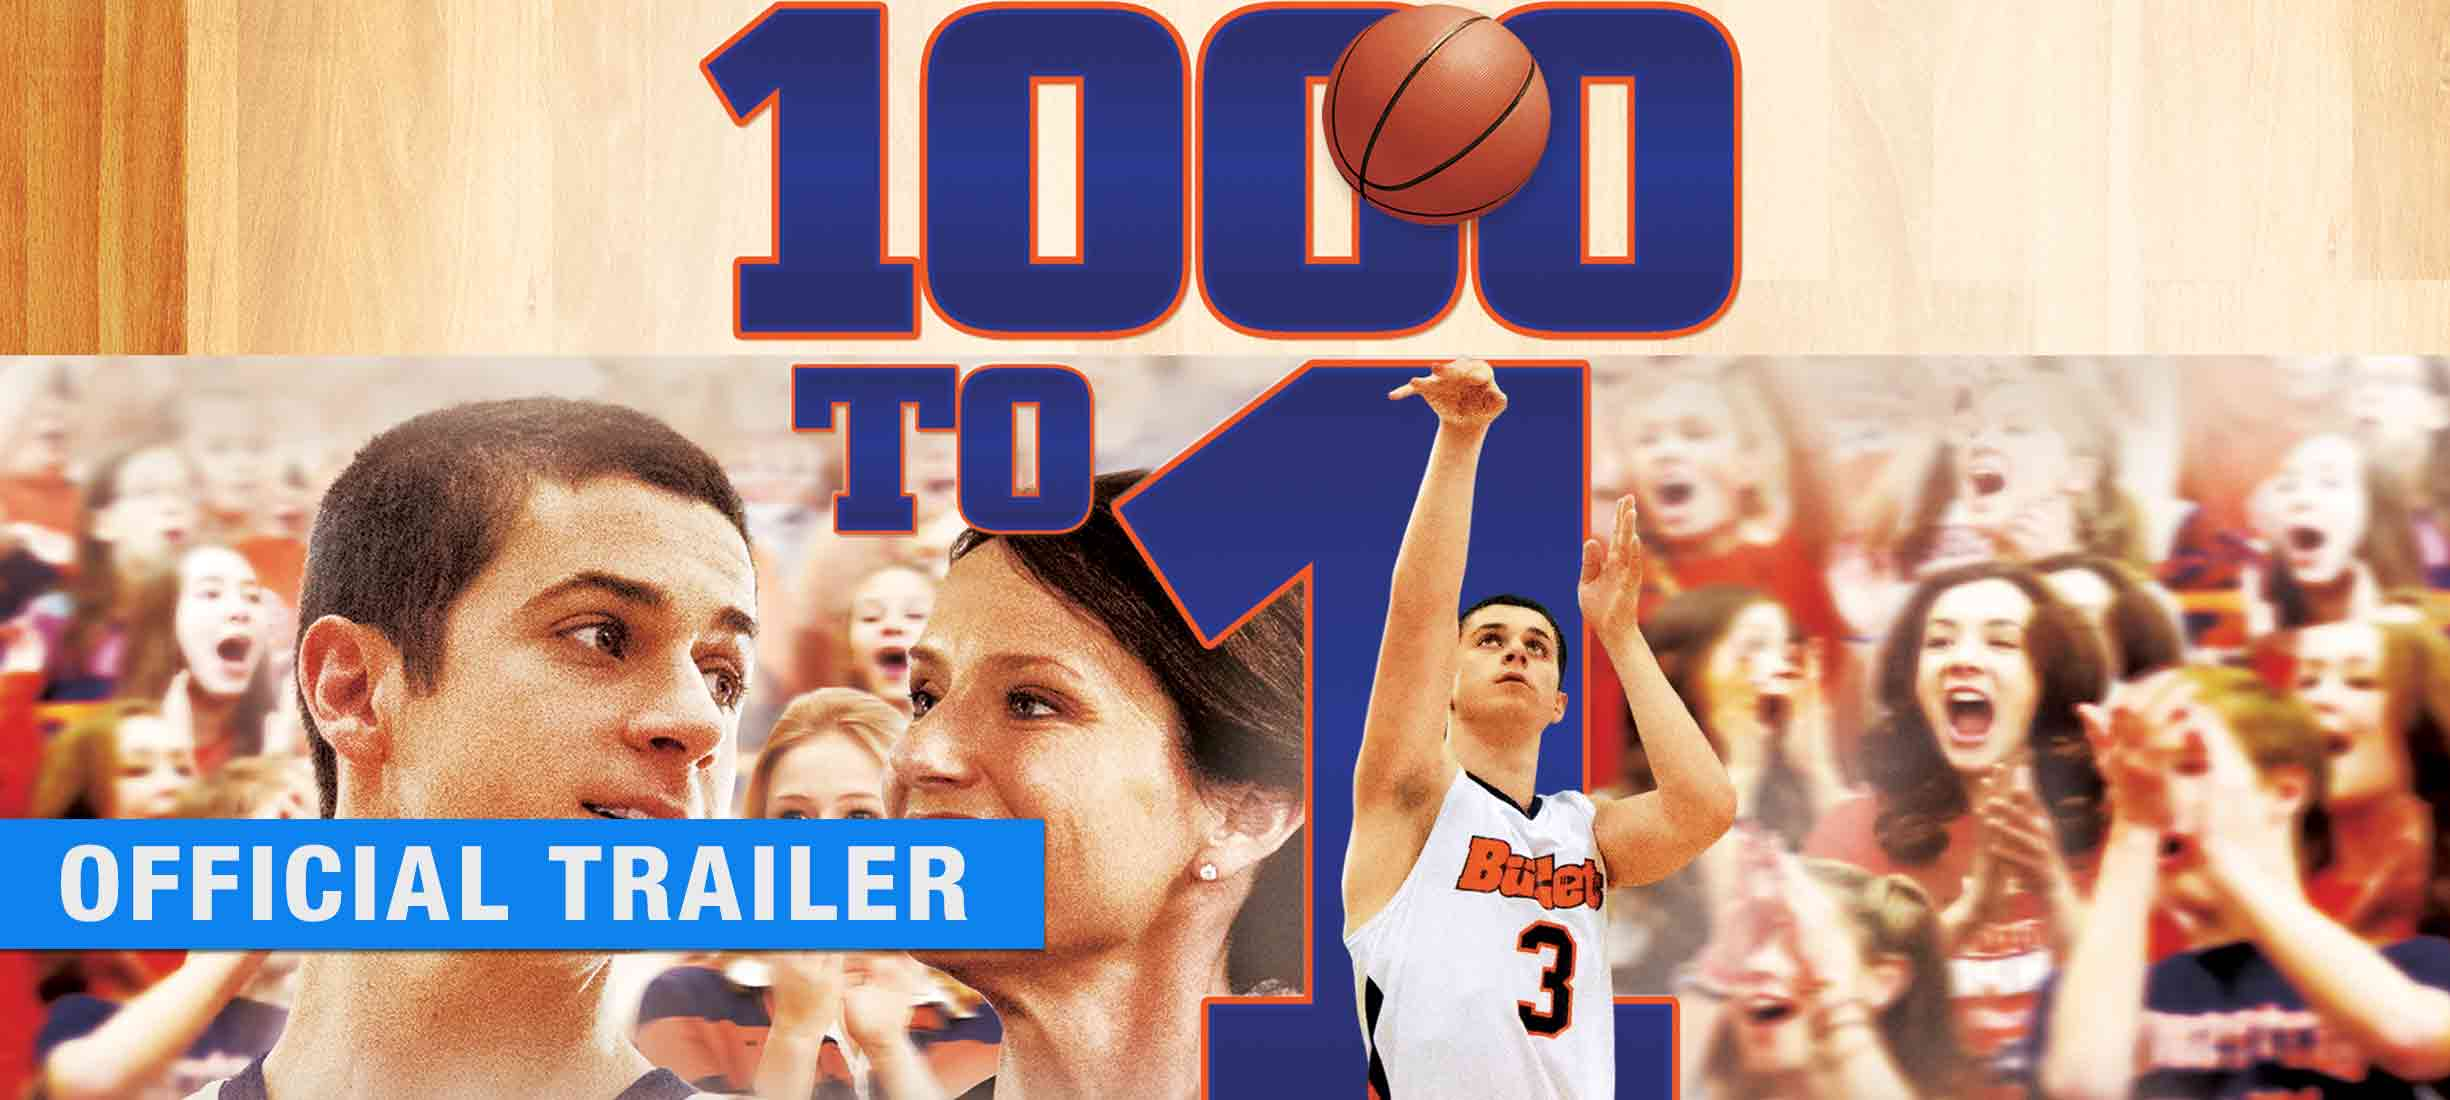 1000 to 1: Trailer